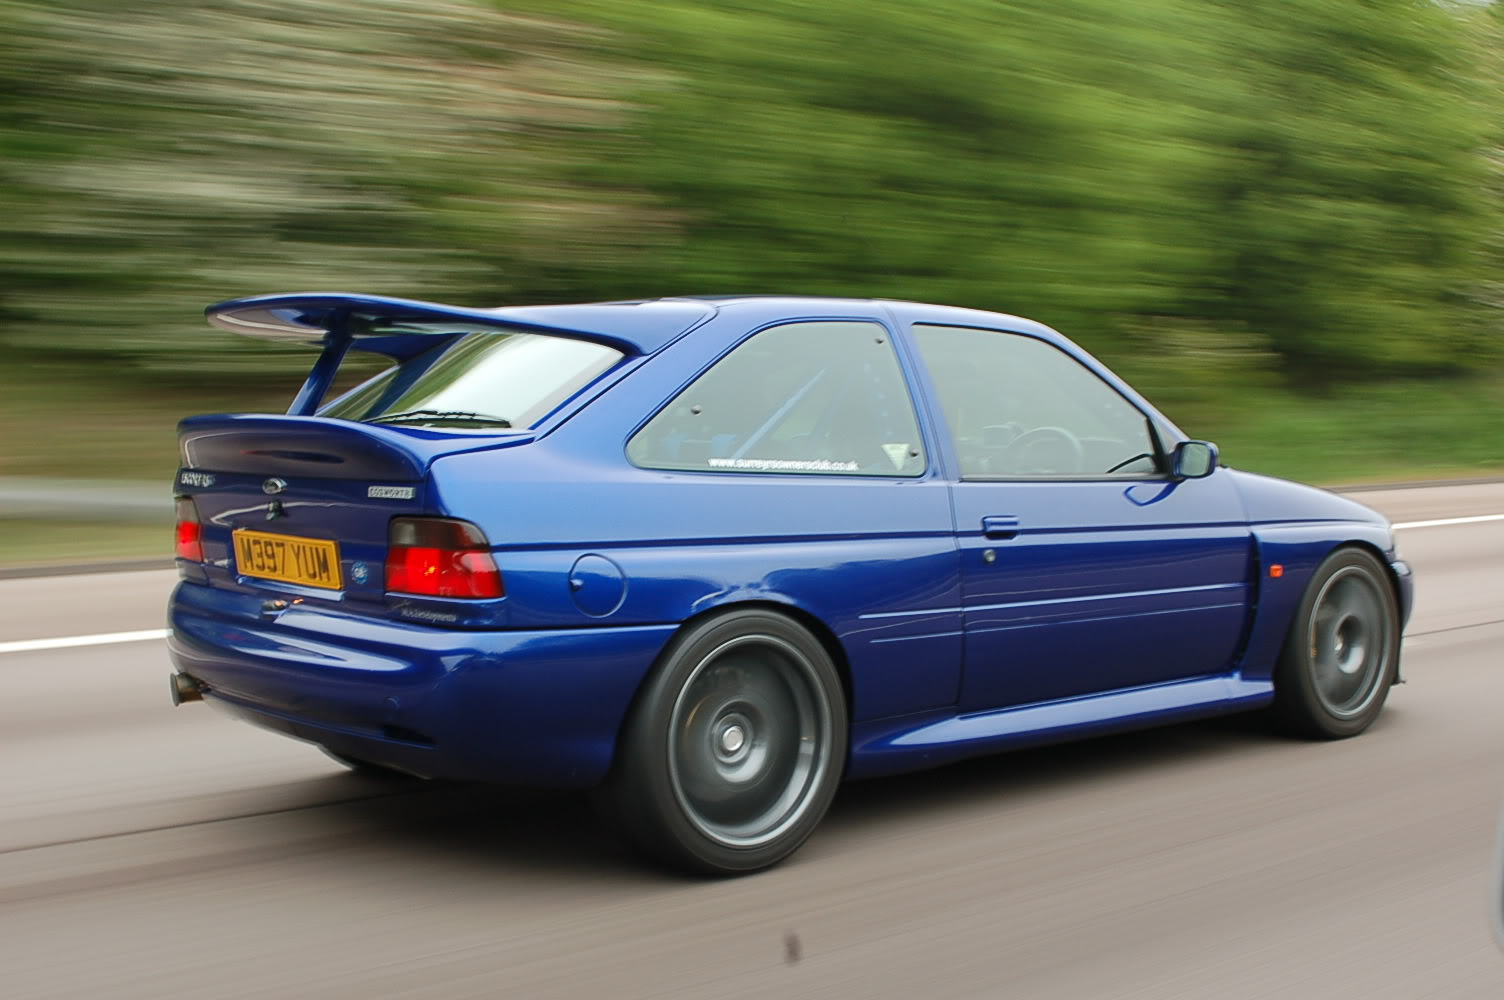 A large proportion of UK petrolhead's grew up wanting an Escort Cosworth more than their next breath